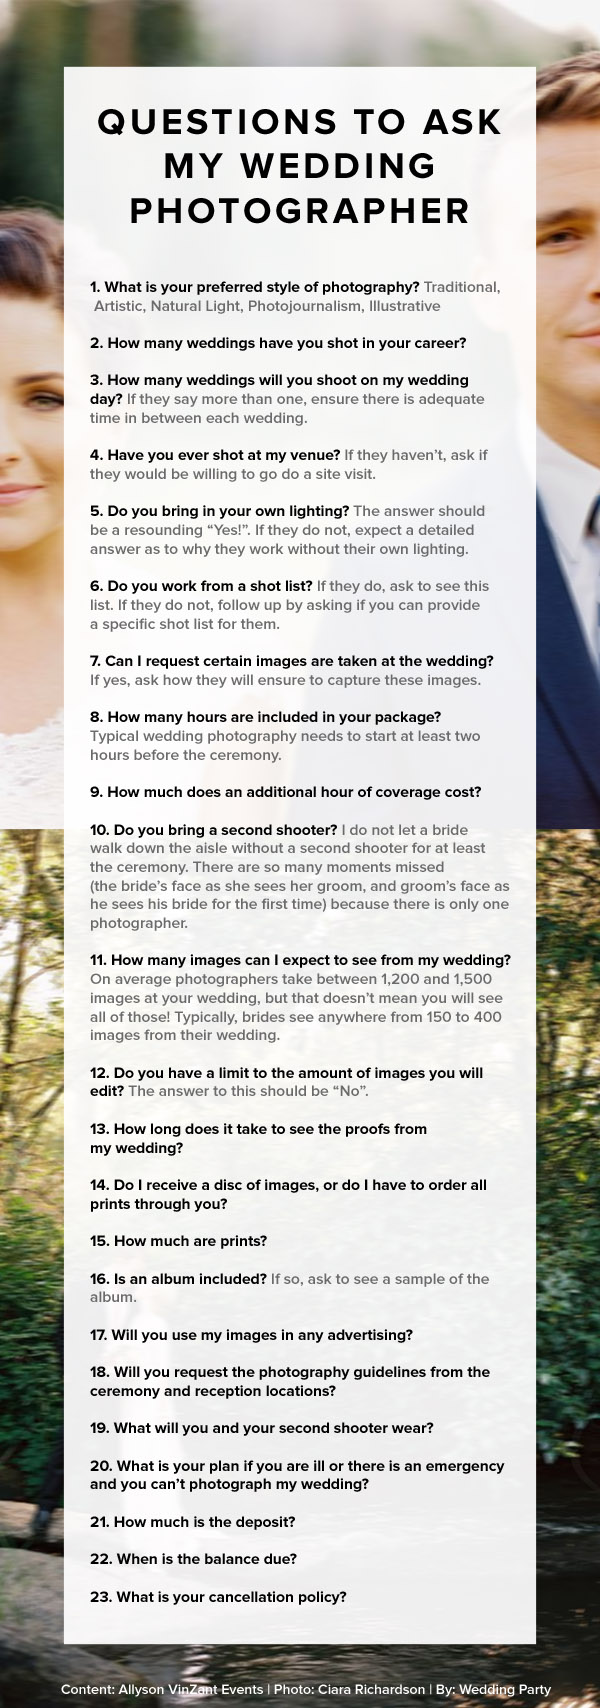 questions to ask photographer